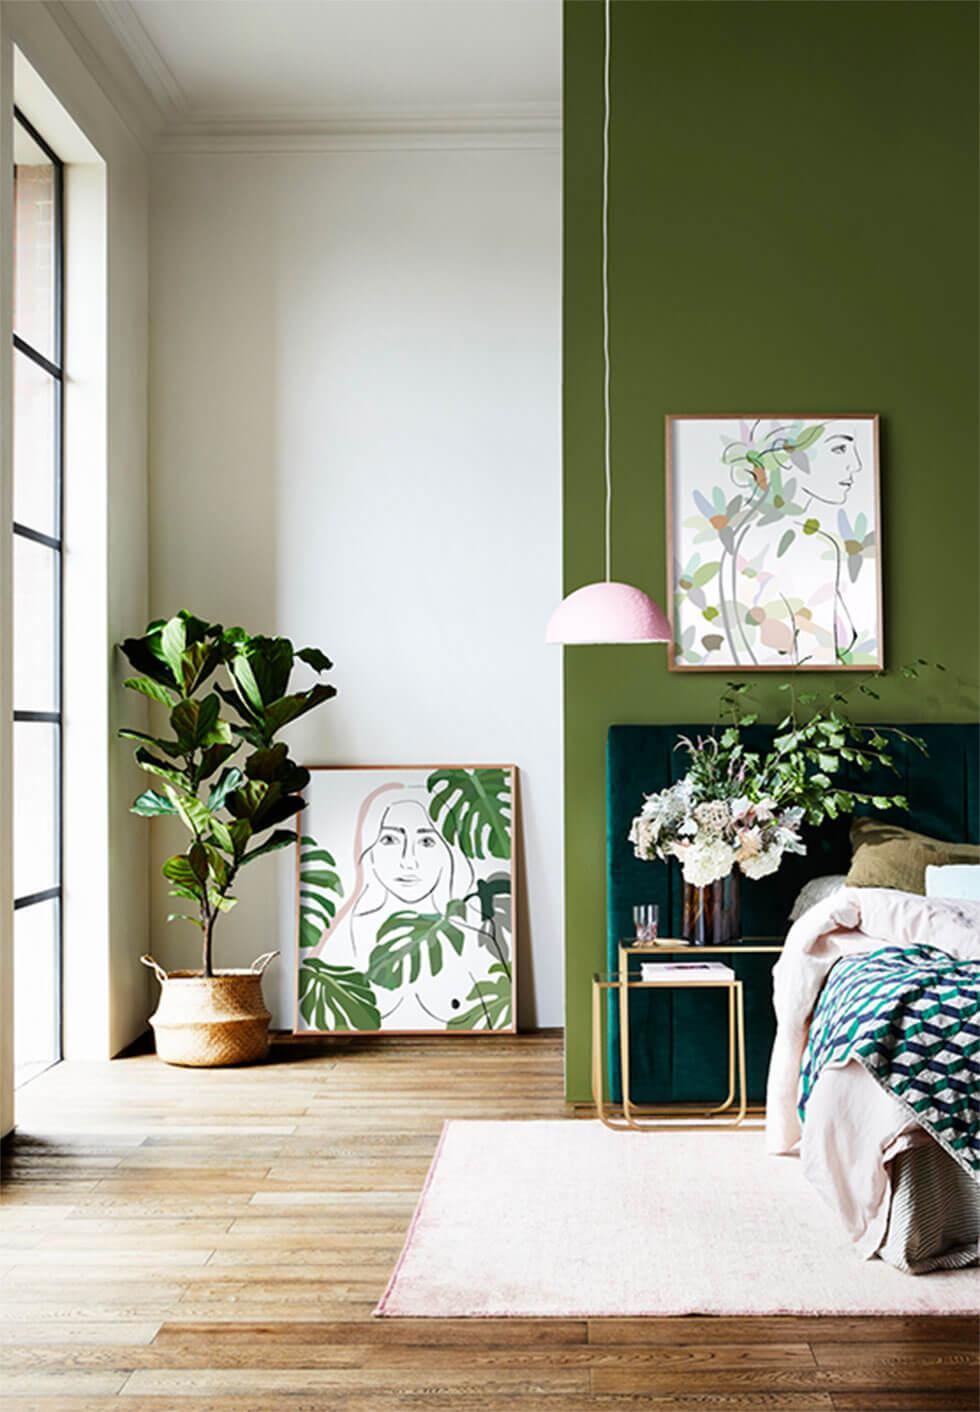 Light green bedroom with indoor plants and green artwork.